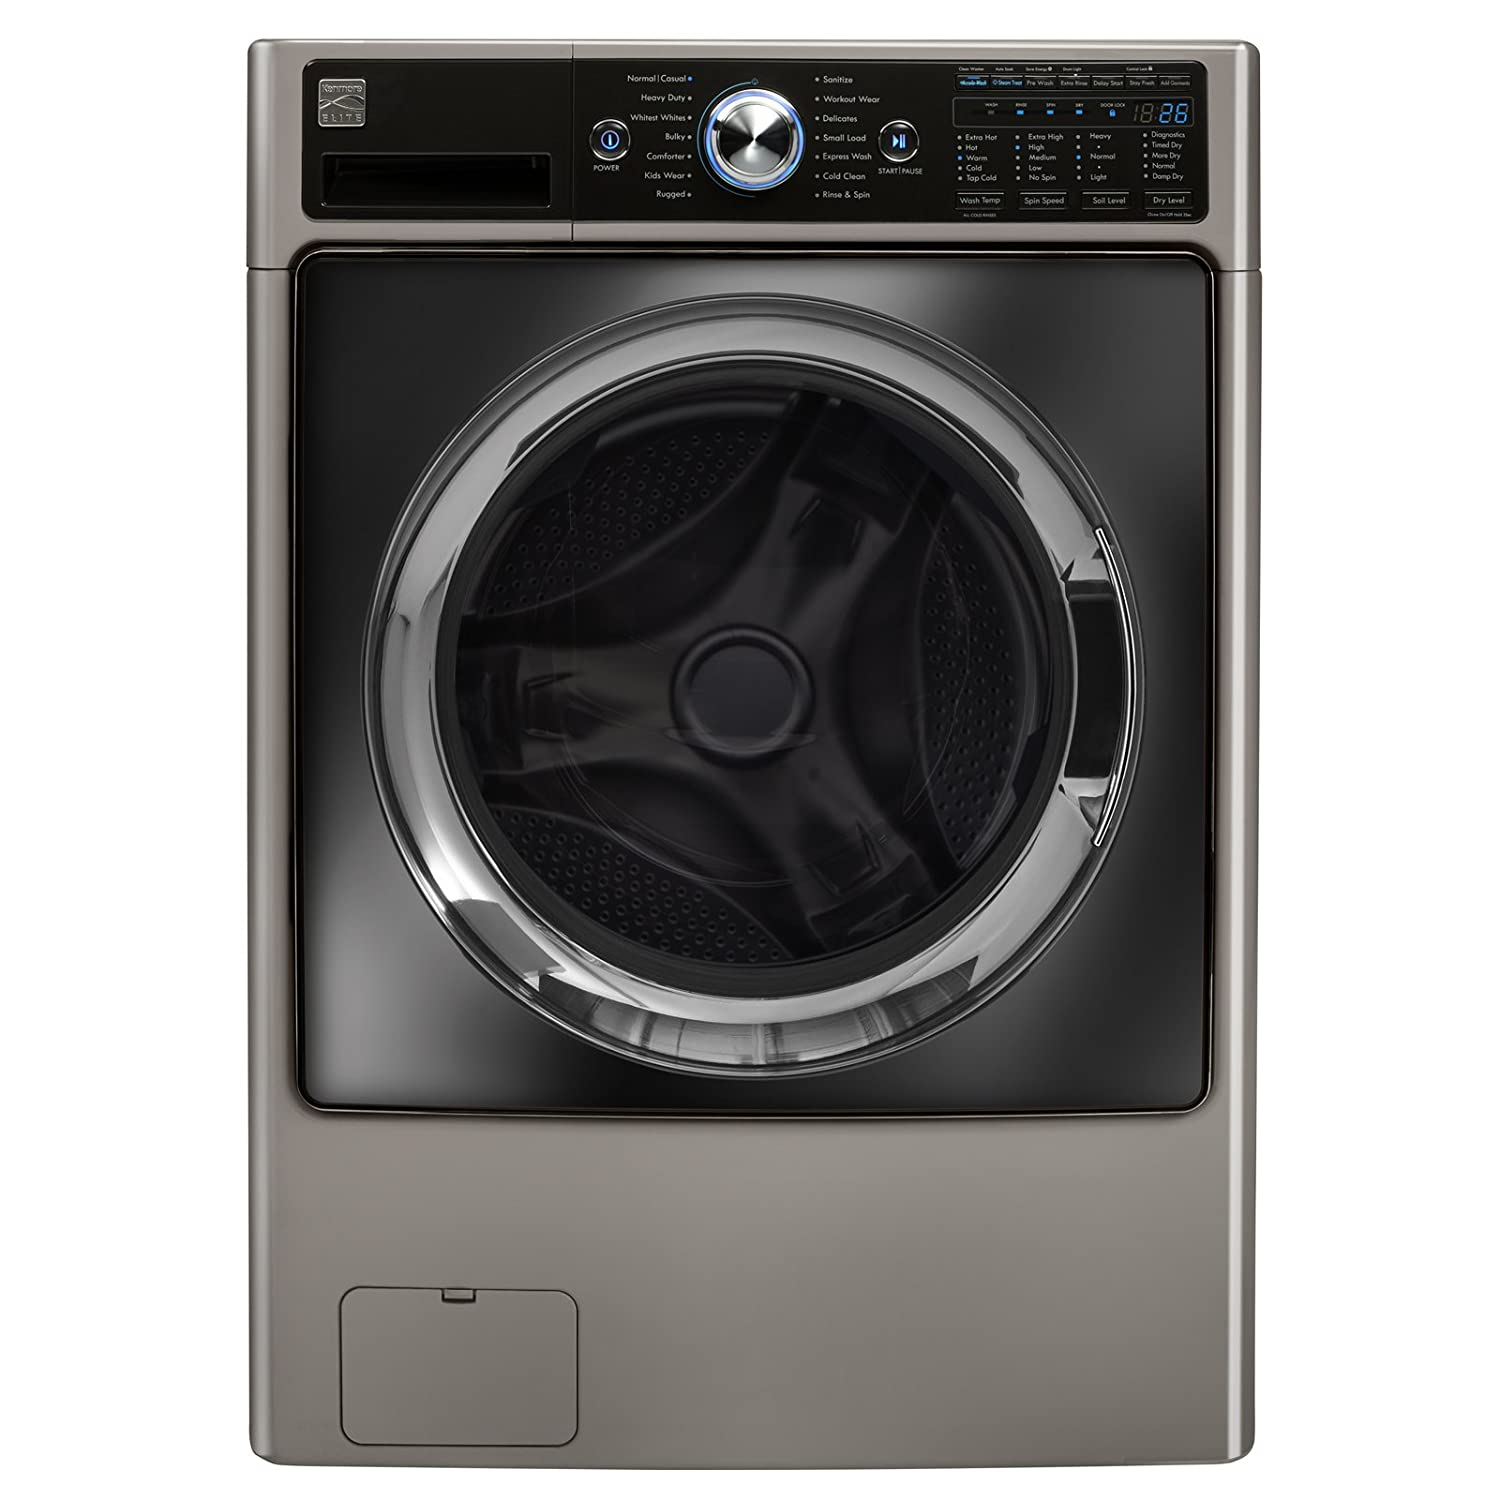 Kenmore Elite 41003 4.5 cu. ft. Front Load Combination Washer/Dryer in Silver, includes delivery and hookup